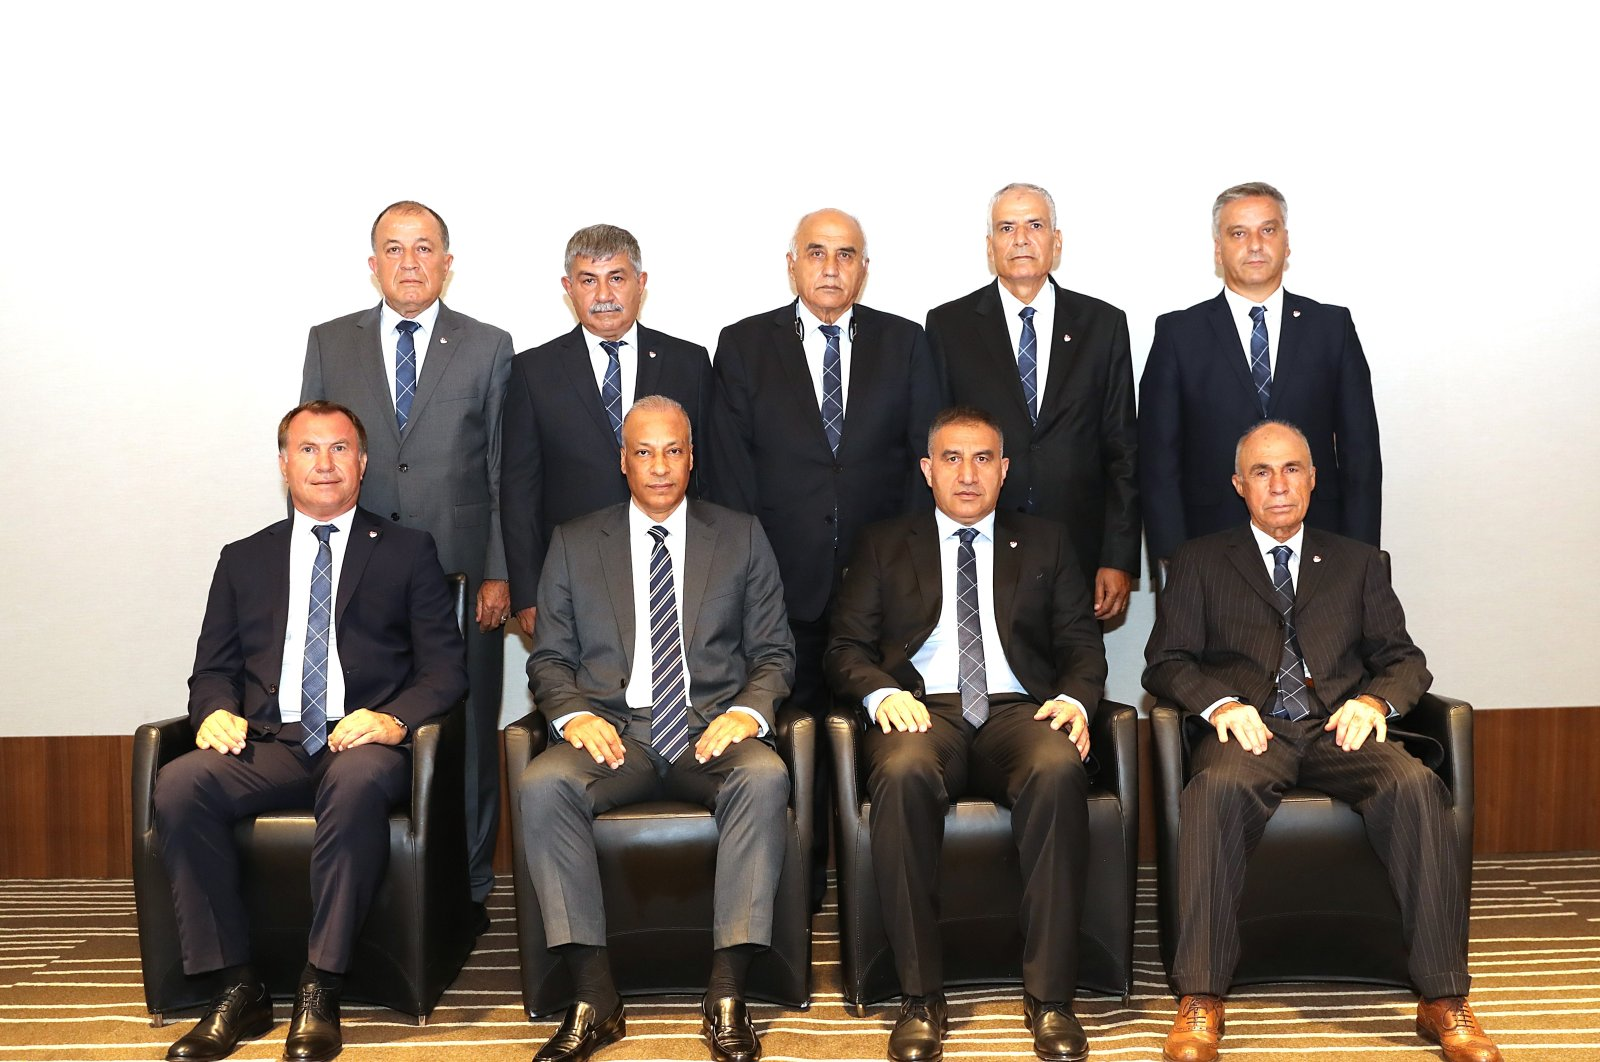 Serdar Tatlı (front 2nd left) poses with his fellow committee members in TFF headquarters in Istanbul, Turkey, Aug. 25, 2020. (IHA Photo)